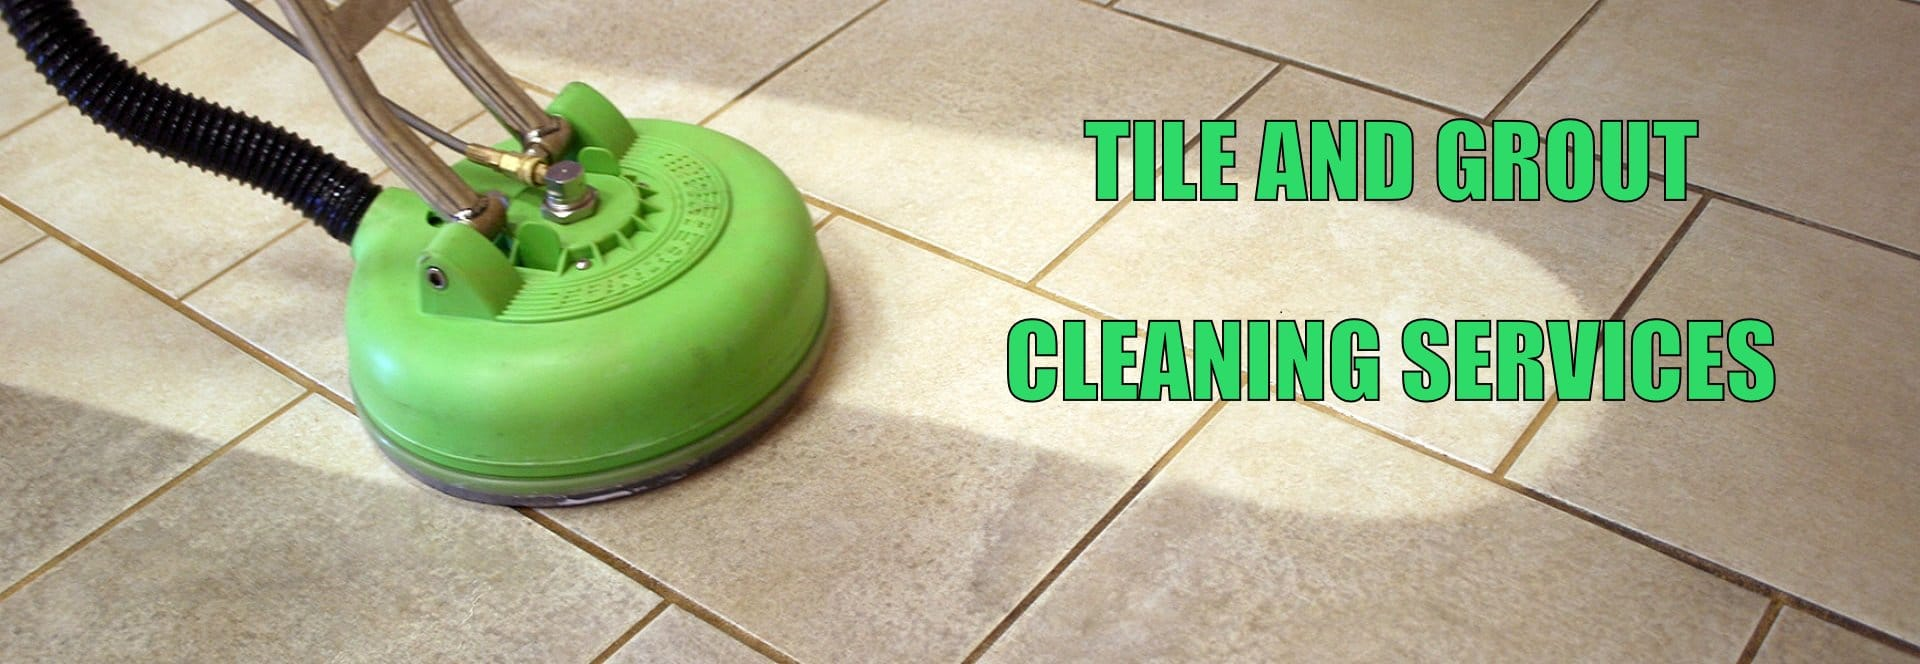 Tile and grout cleaning eco pro services group tile and grout cleaning dailygadgetfo Images